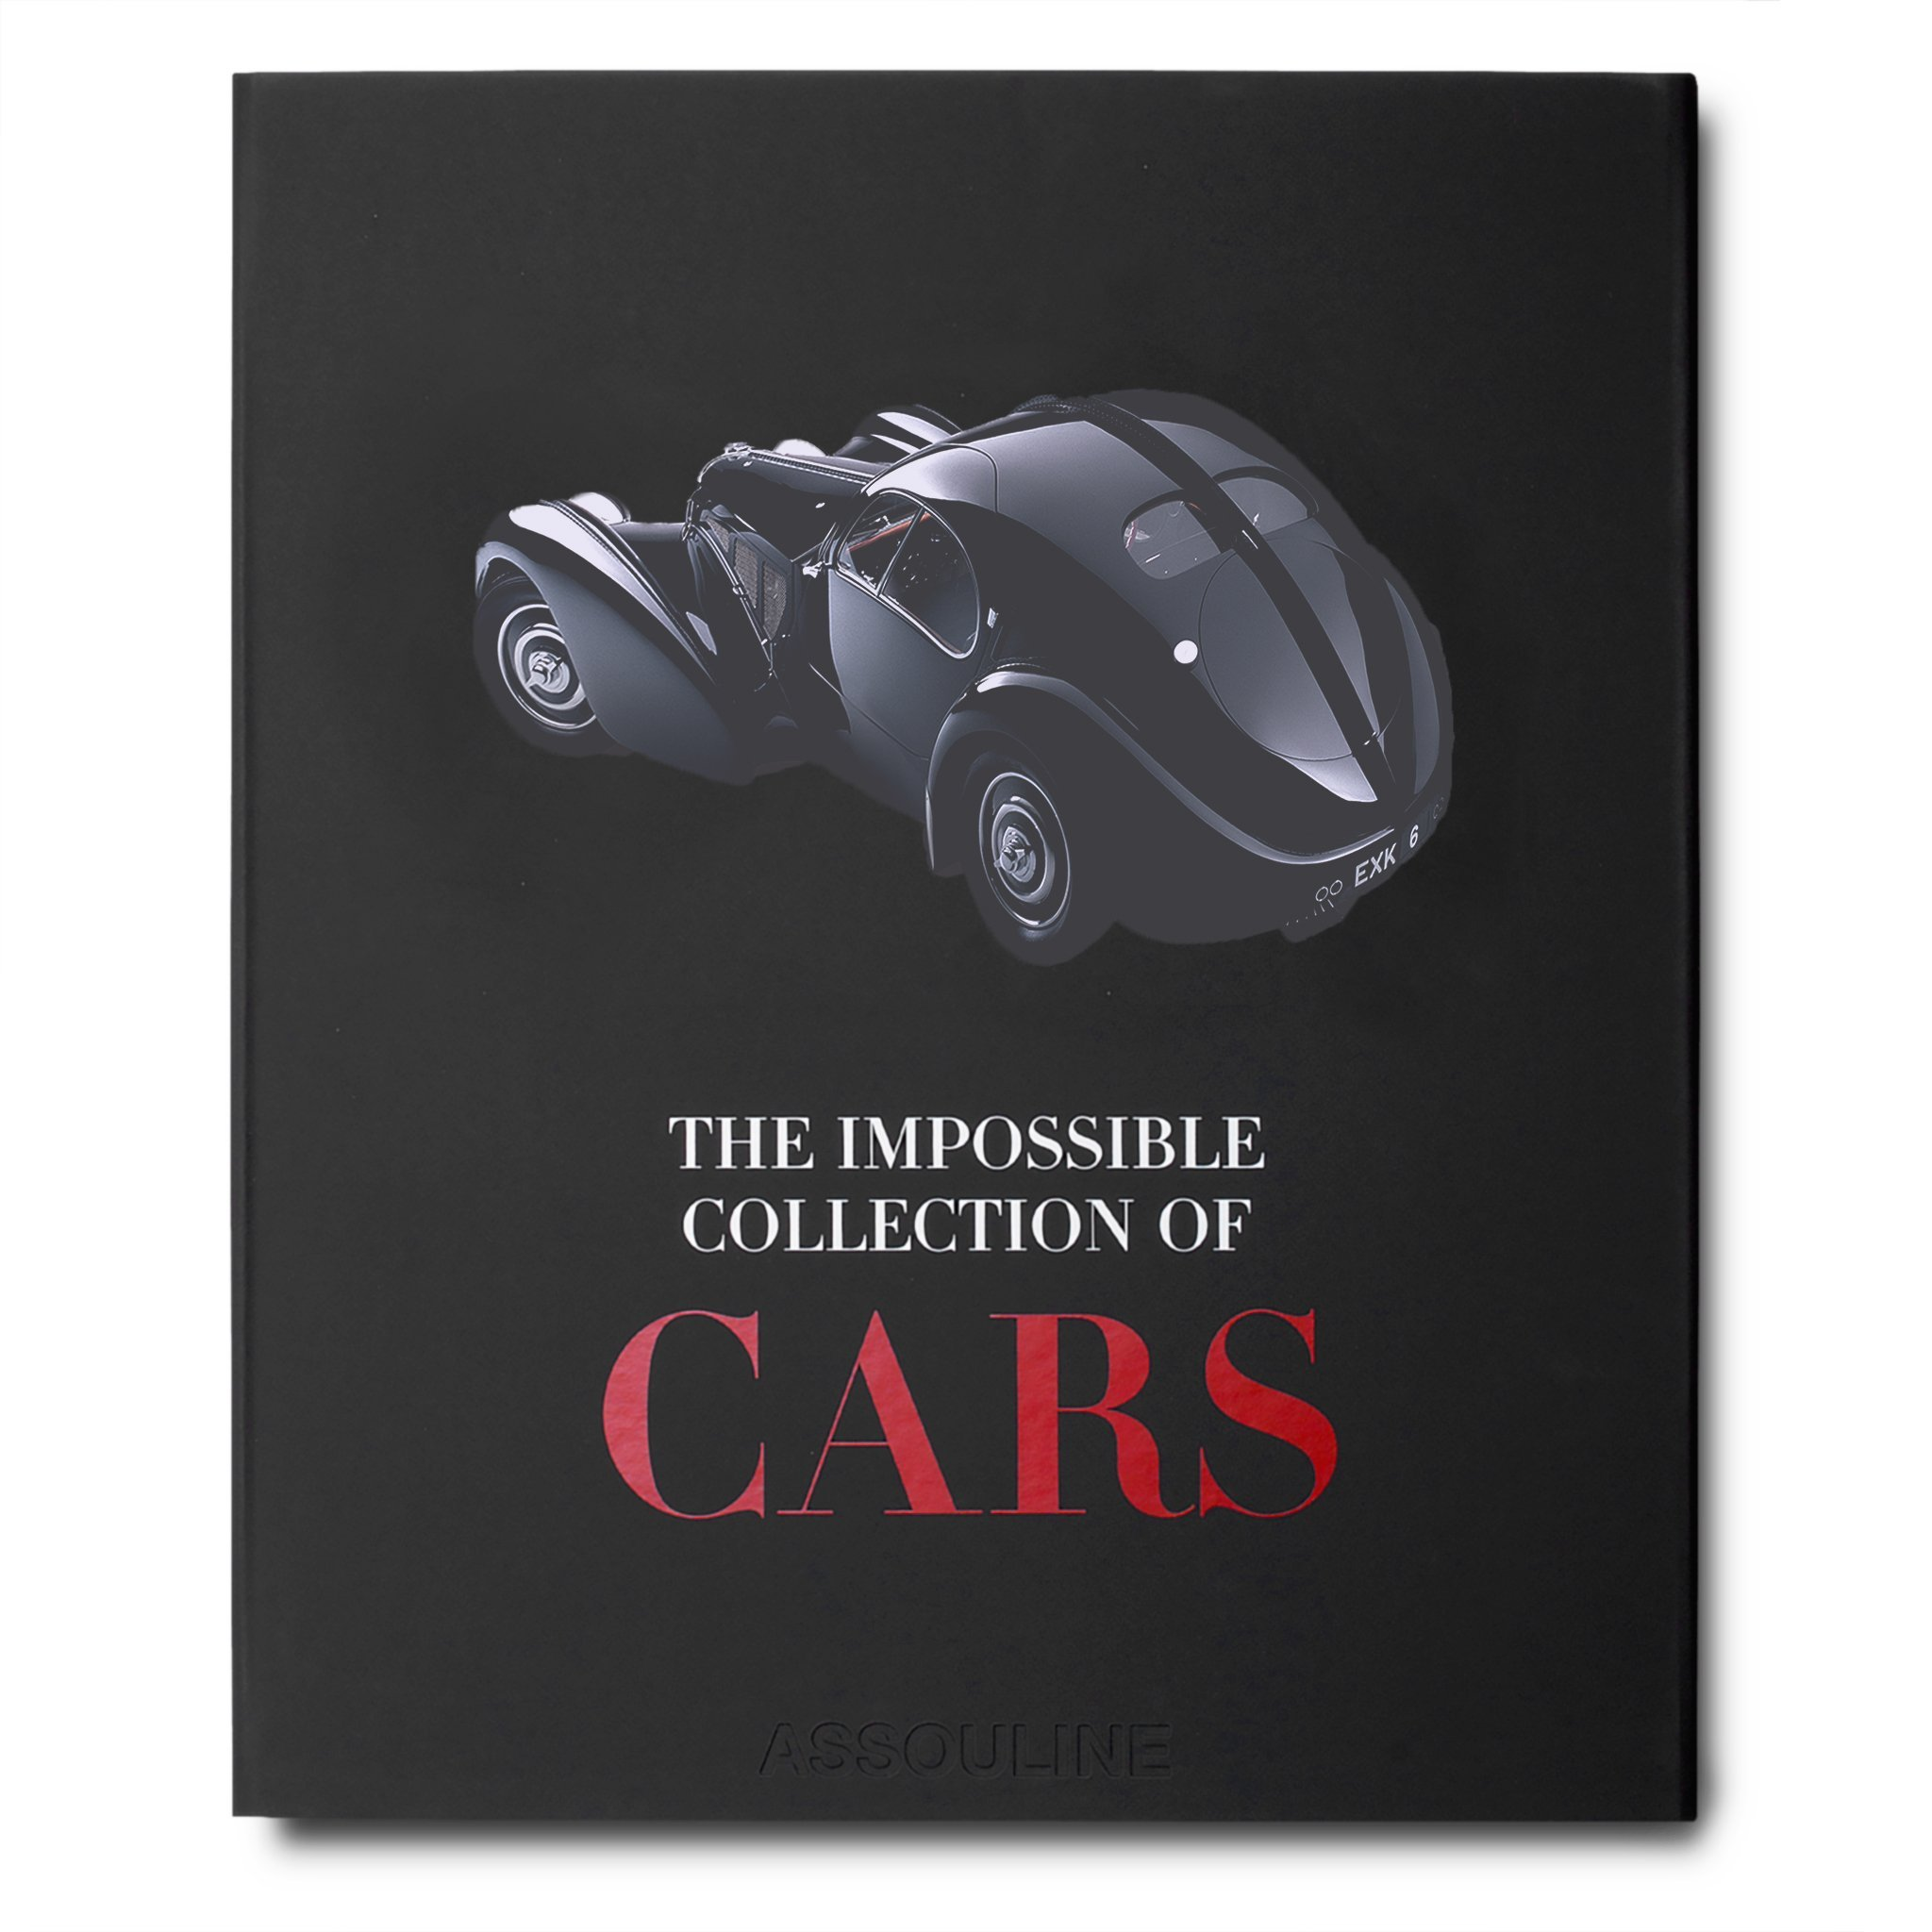 Father's Day Gifts - Gifts for Men - Gifts for Him - Gifts for Dads - Assouline Books The Impossible Collection of Cars - books for car lovers - luxury table top books